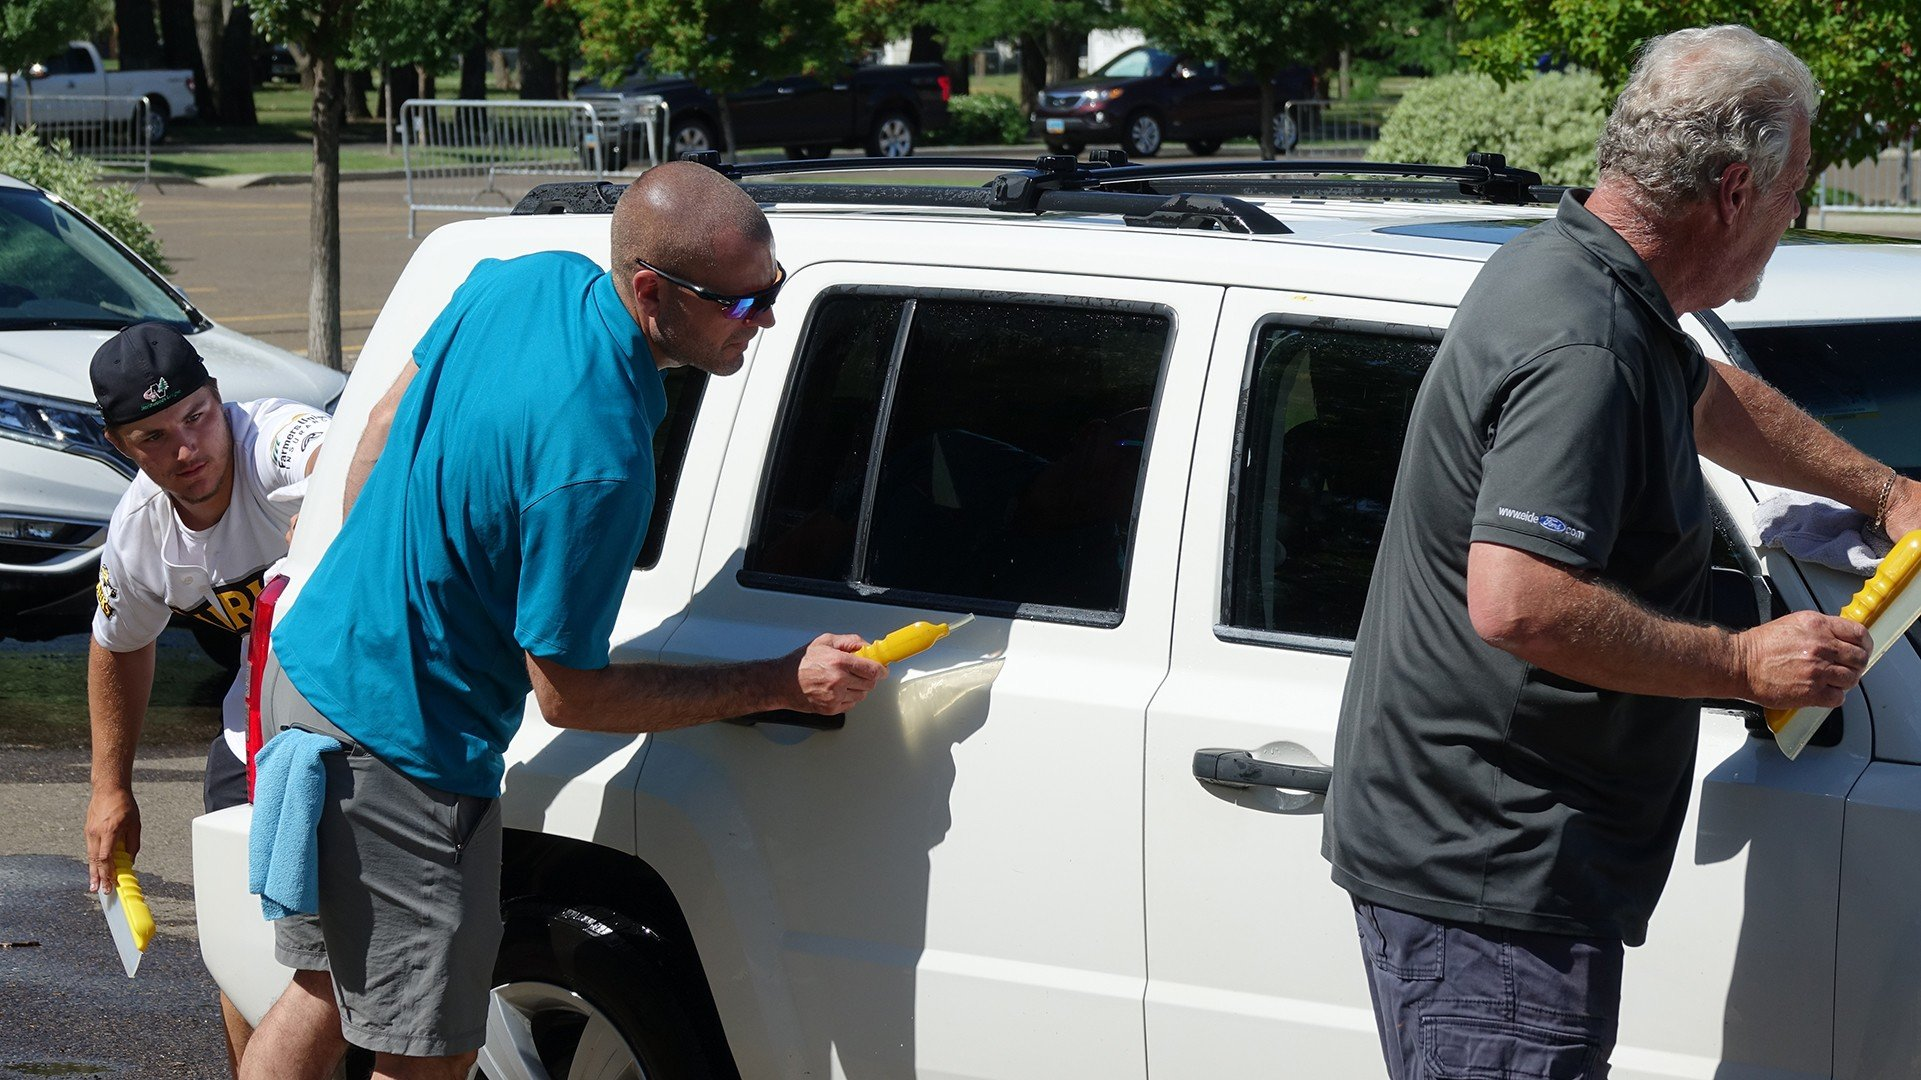 Eide Ford and Chrysler employees washing cars in Bismarck